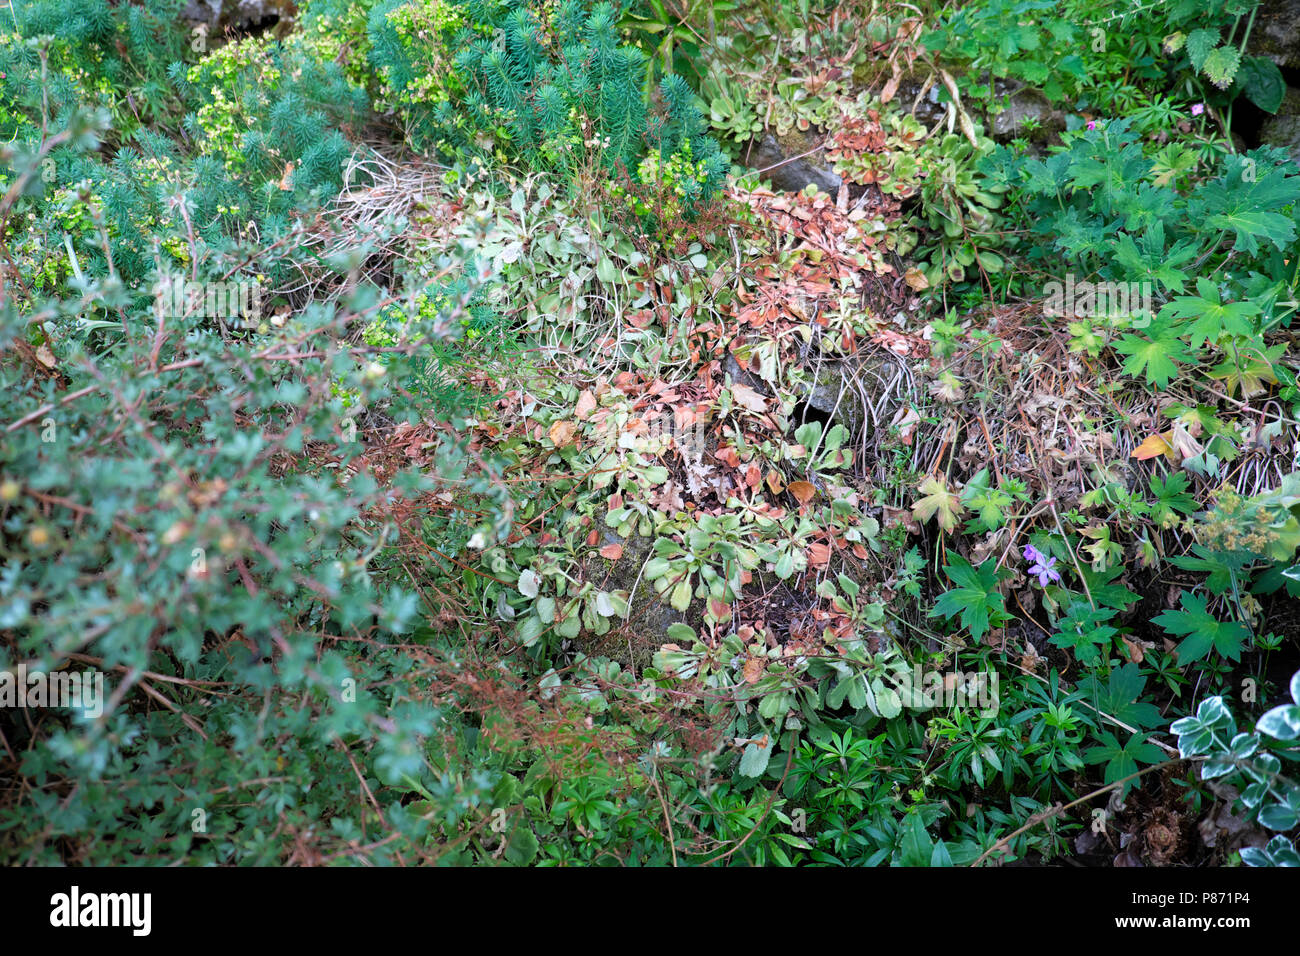 Plants suffering wilting in a rockery garden from lack of rain water in the heatwave of summer 2018 in West Wales UK  KATHY DEWITT - Stock Image